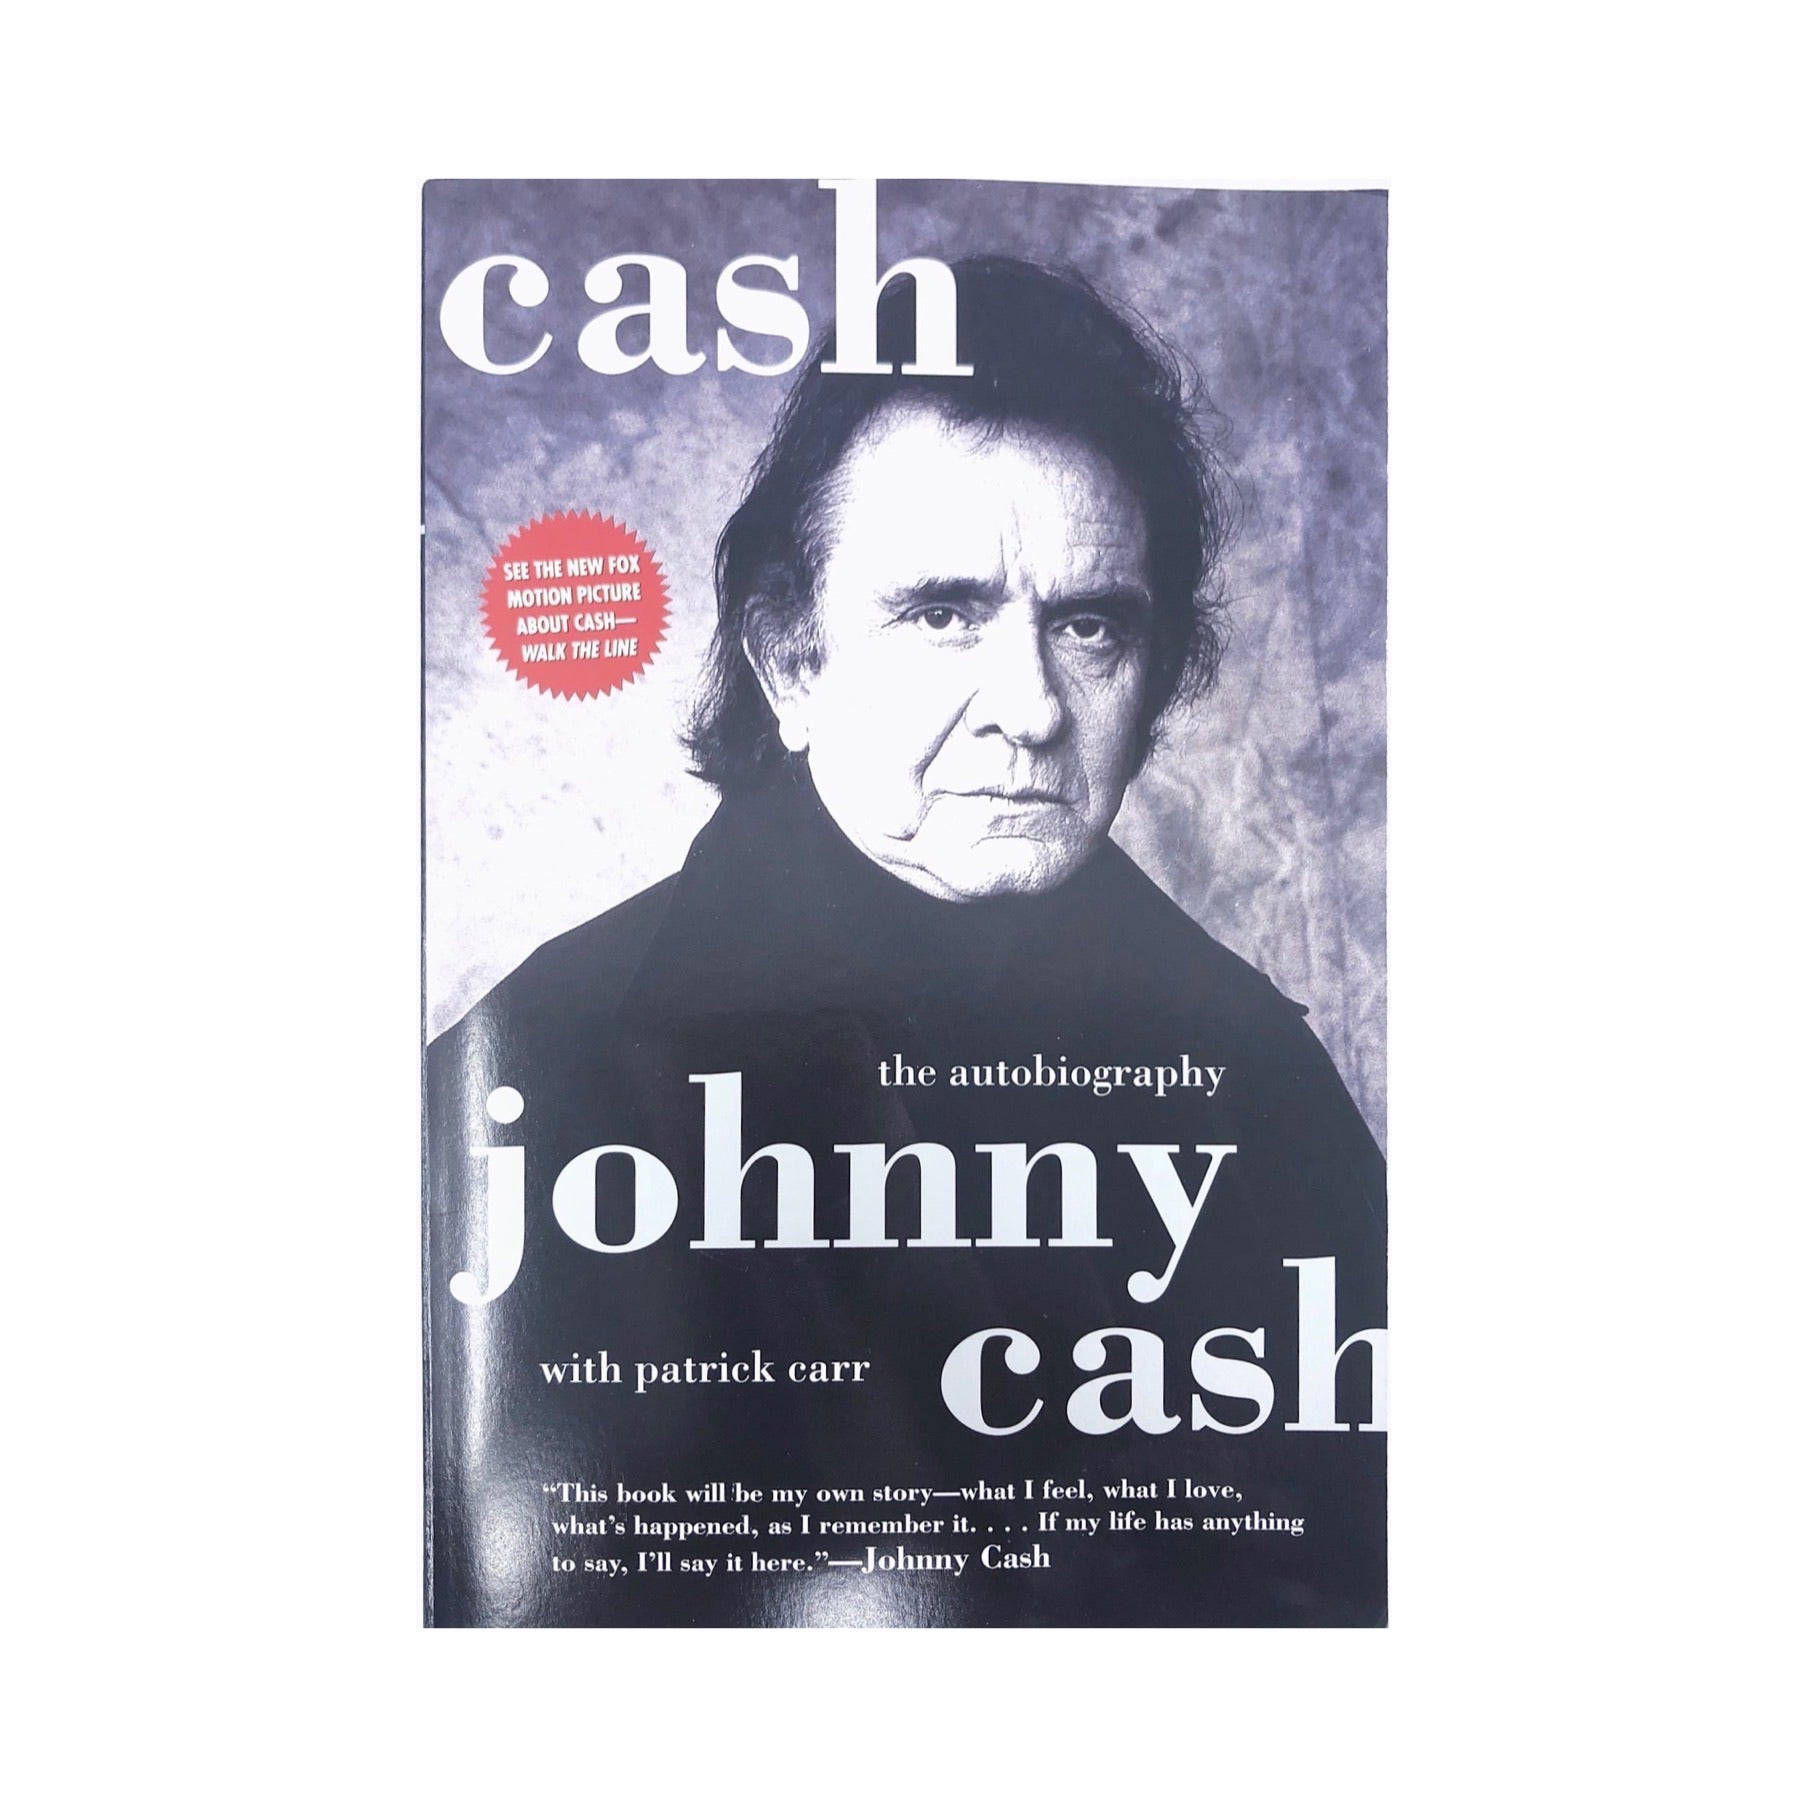 CASH BY JOHNNY CASH